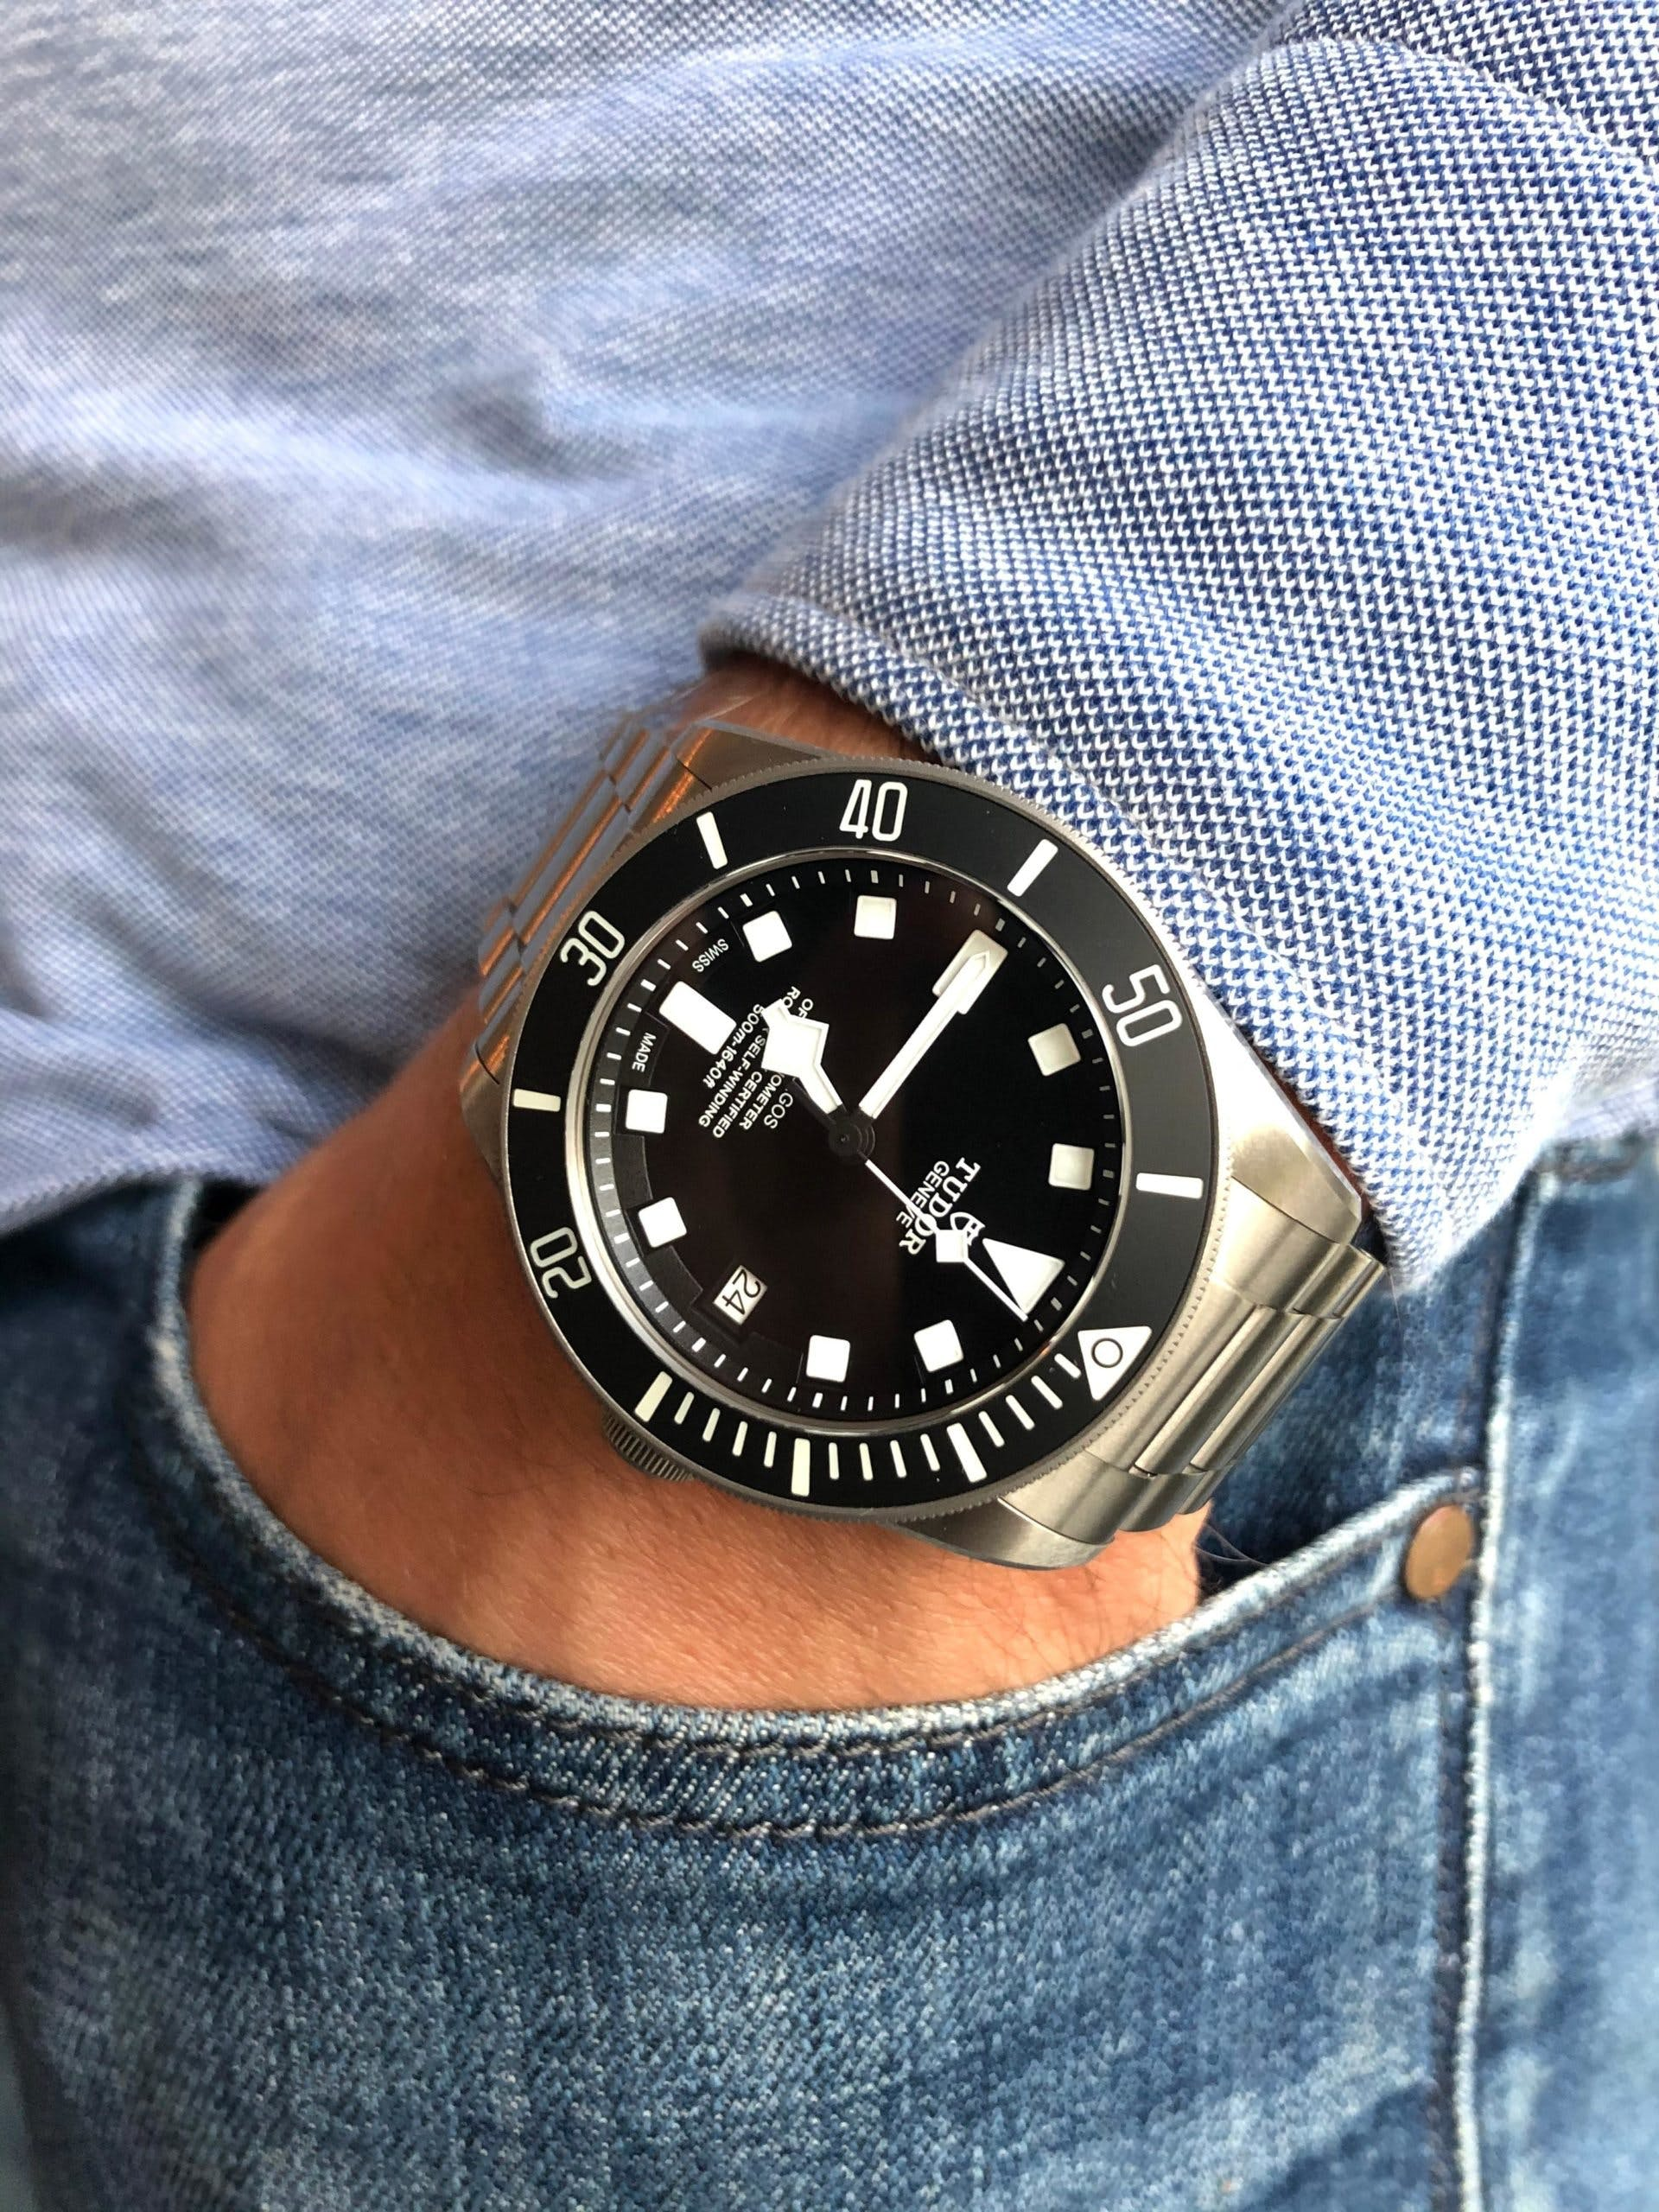 Tudor Pelagos with a black dial